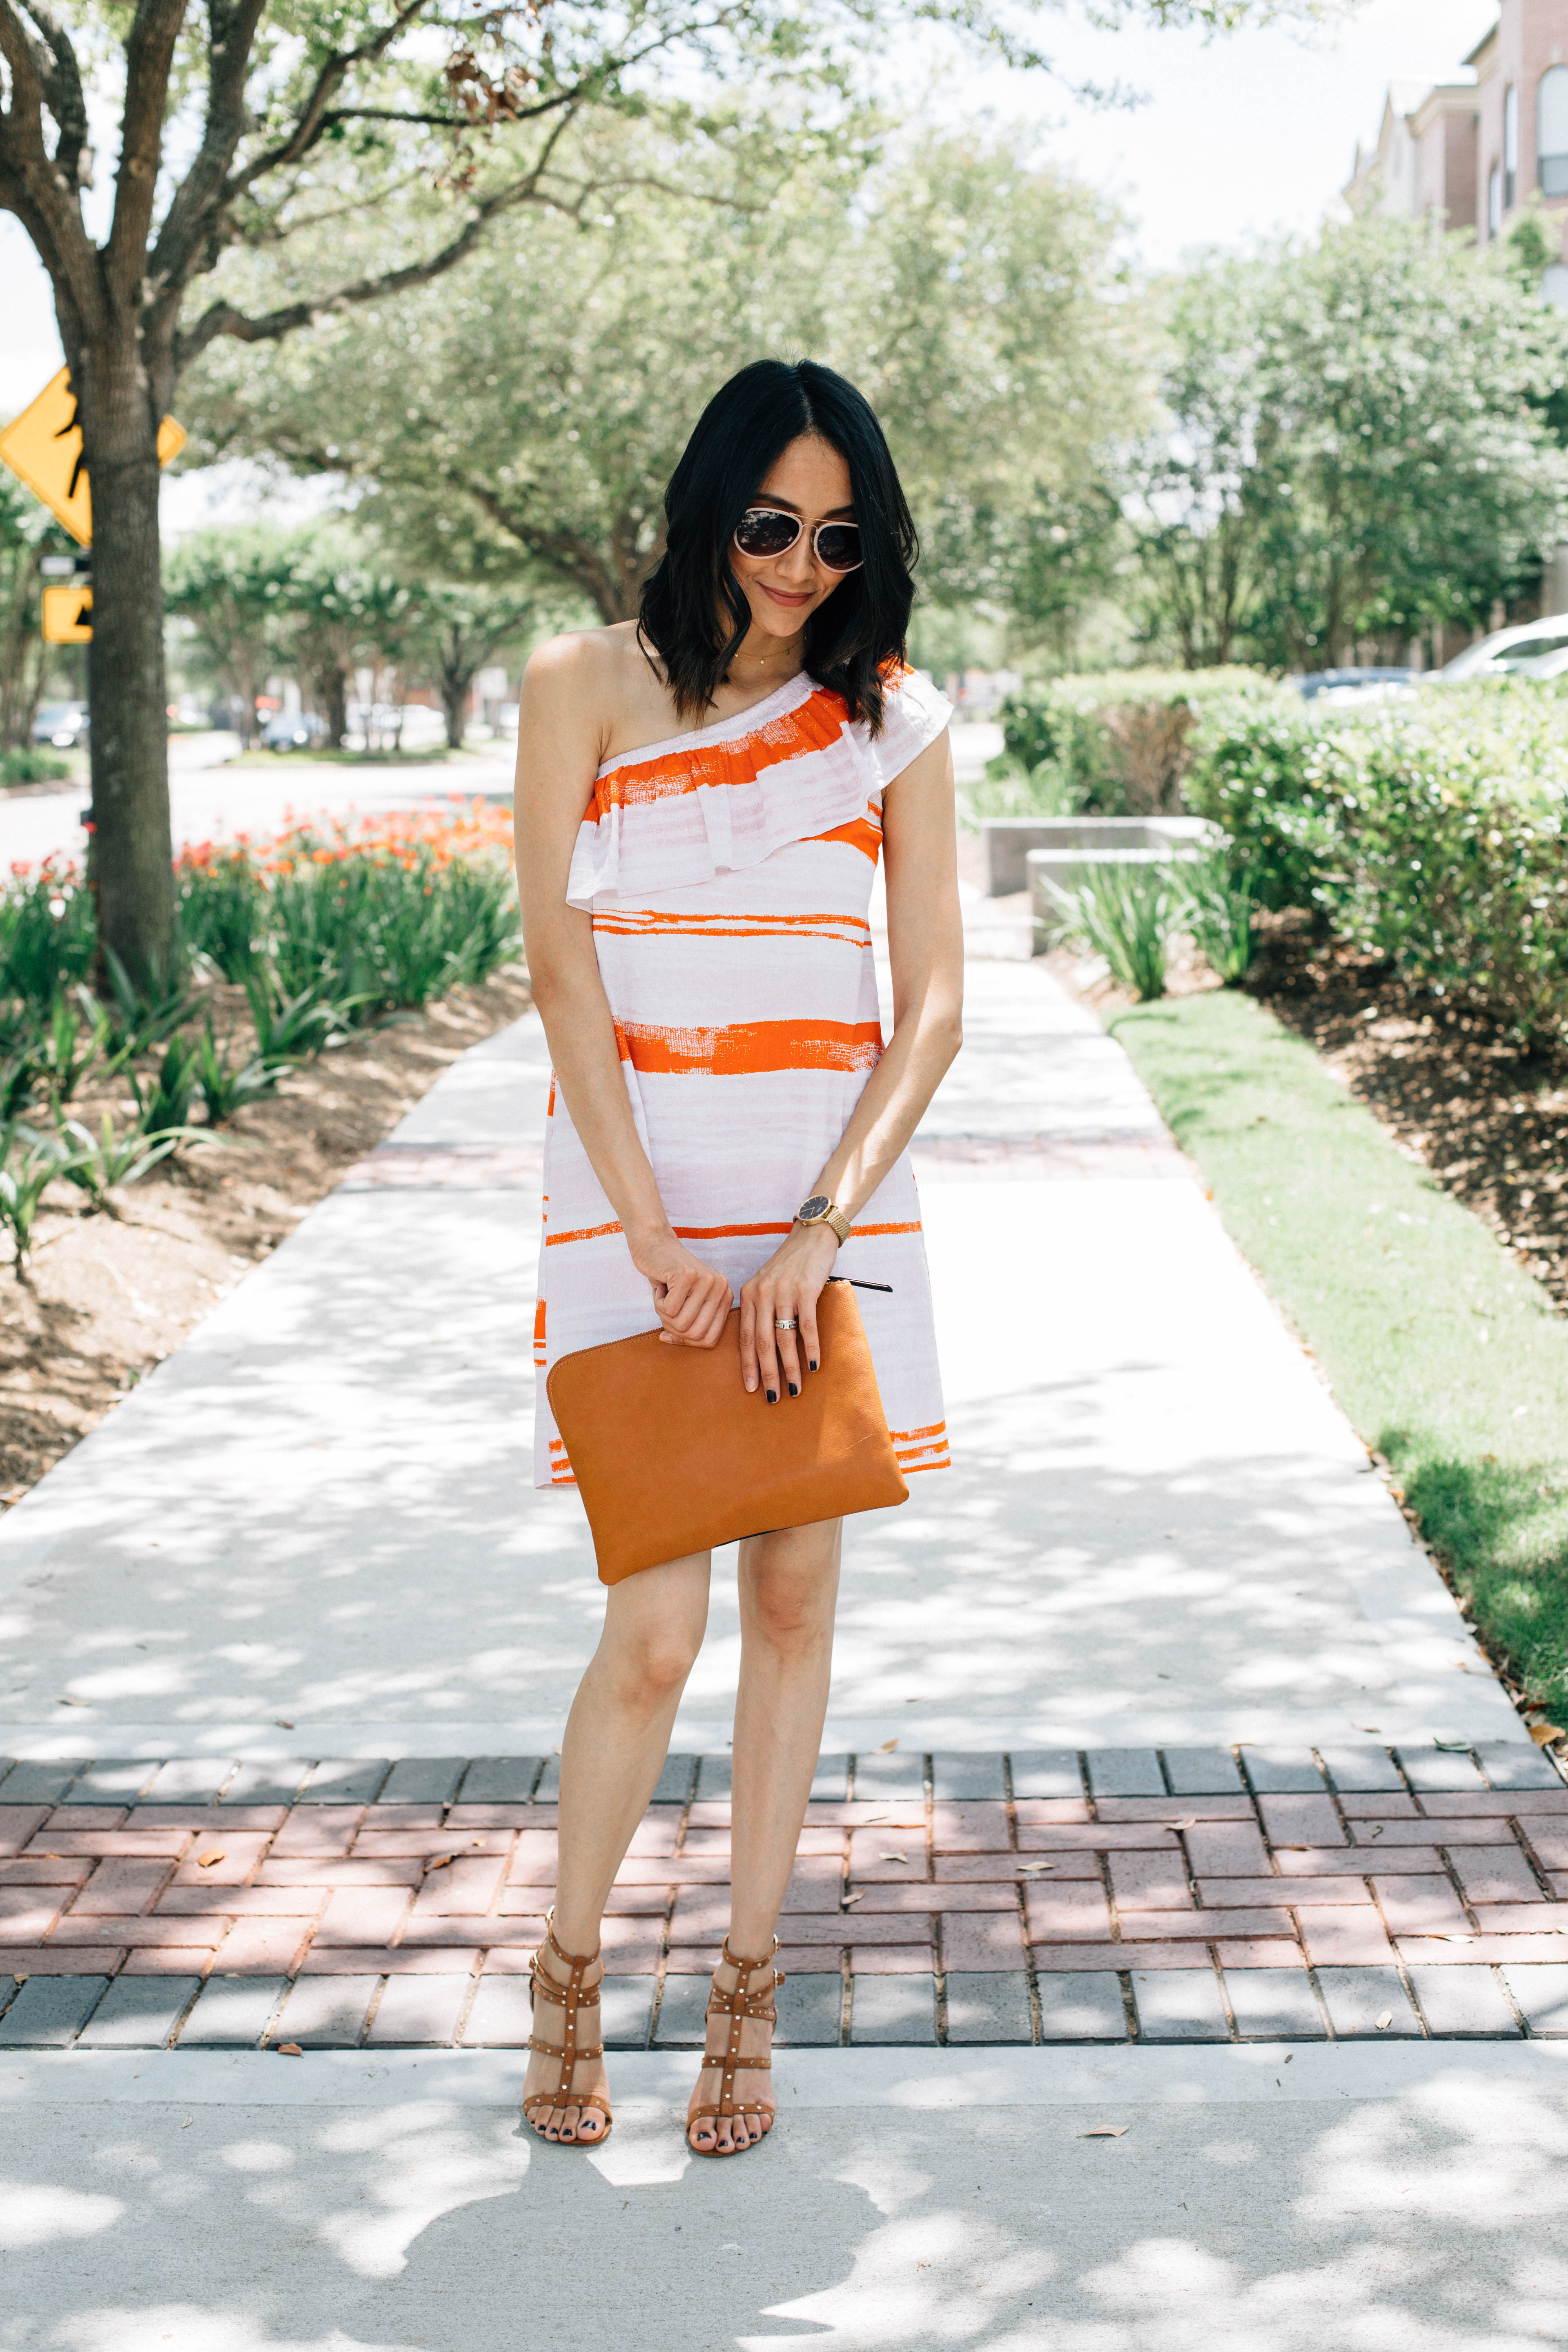 Tips for an effortless way to look chic for brunch, lunch and even a summer wedding.